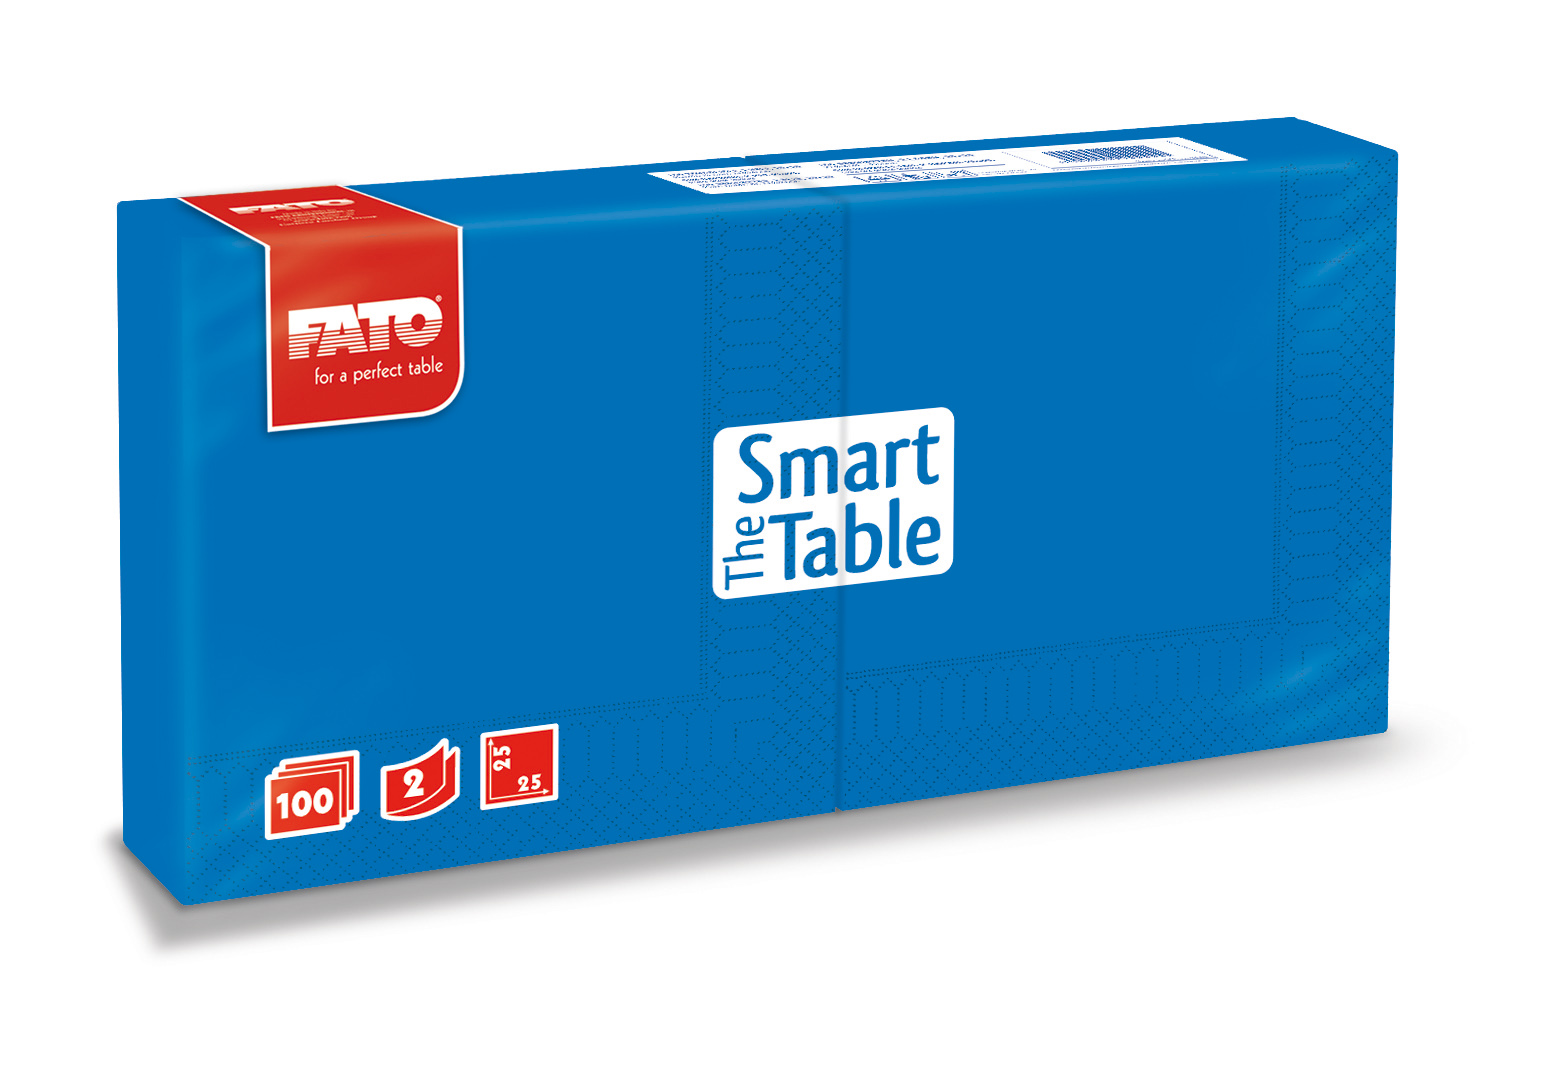 Ubrousky The Smart Table, 25x25cm, 2vr., Modré - 3800 ks